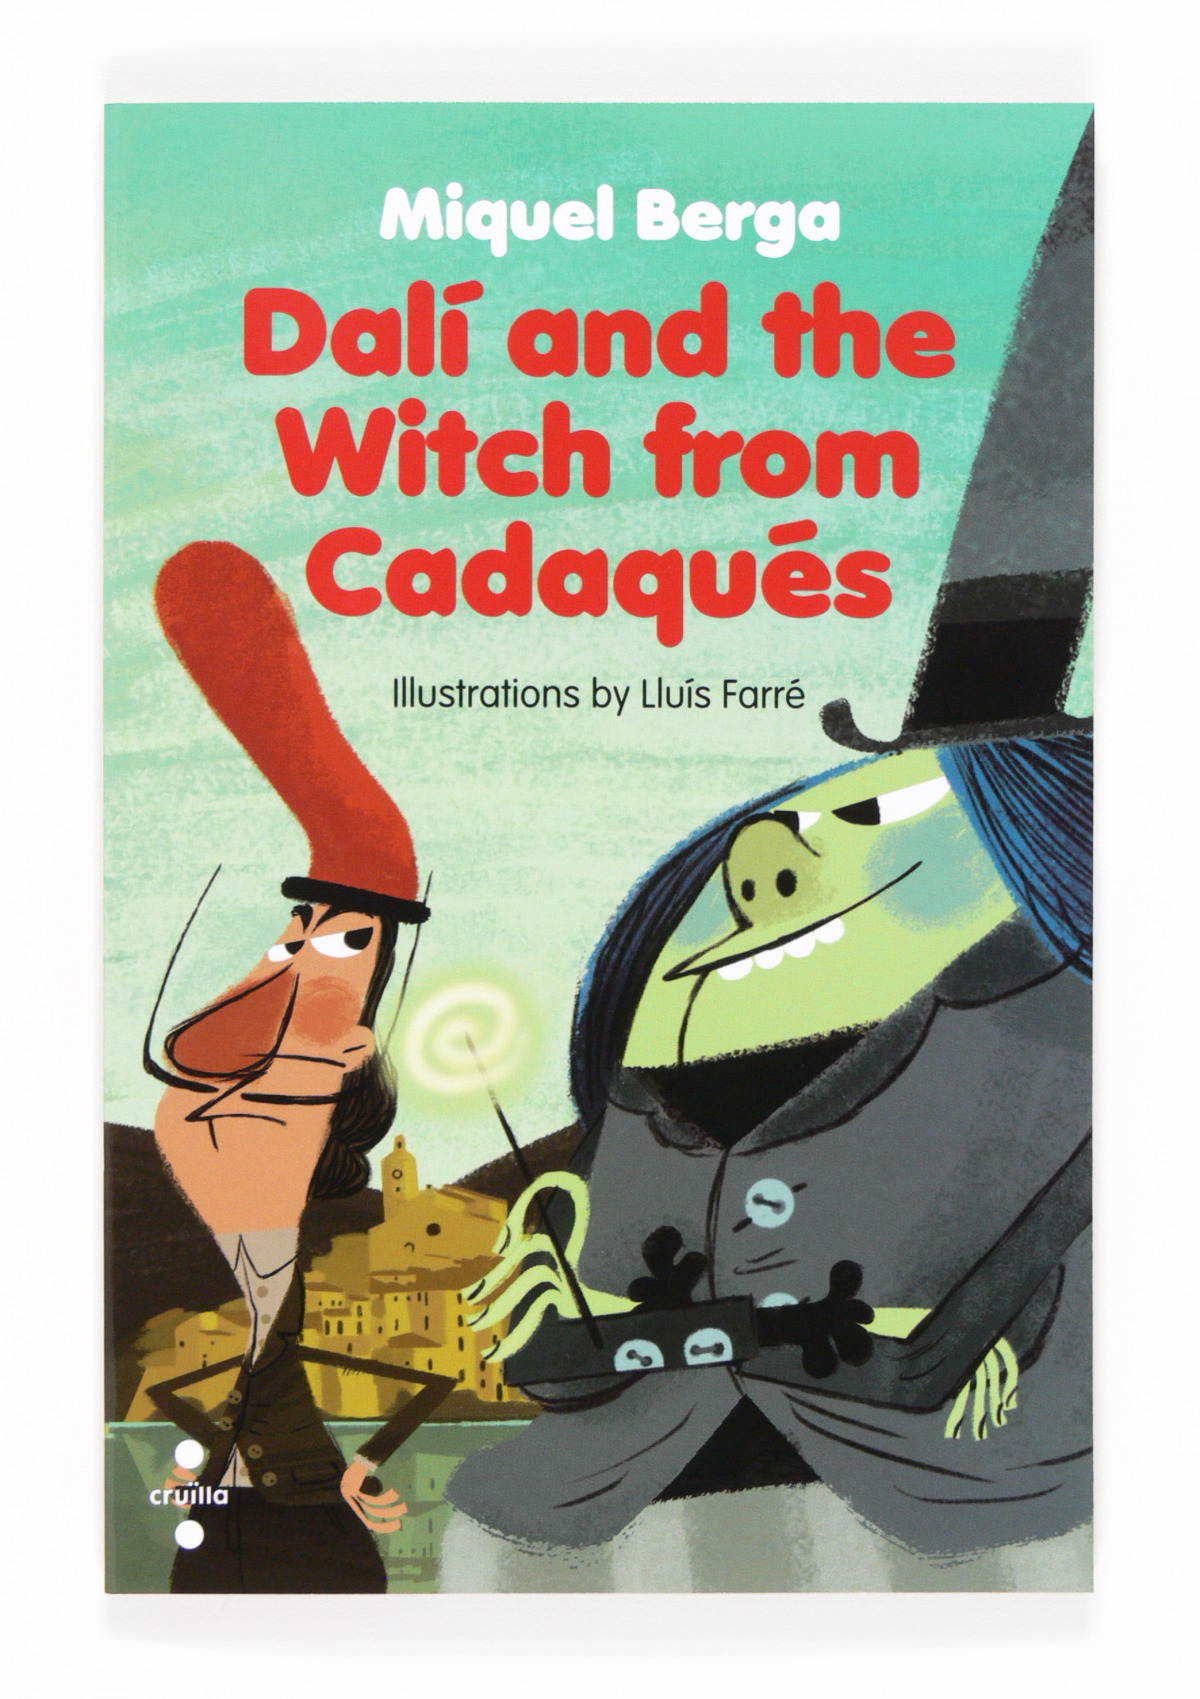 DALÍ AND THE WITCH FROM CADAQUÉS